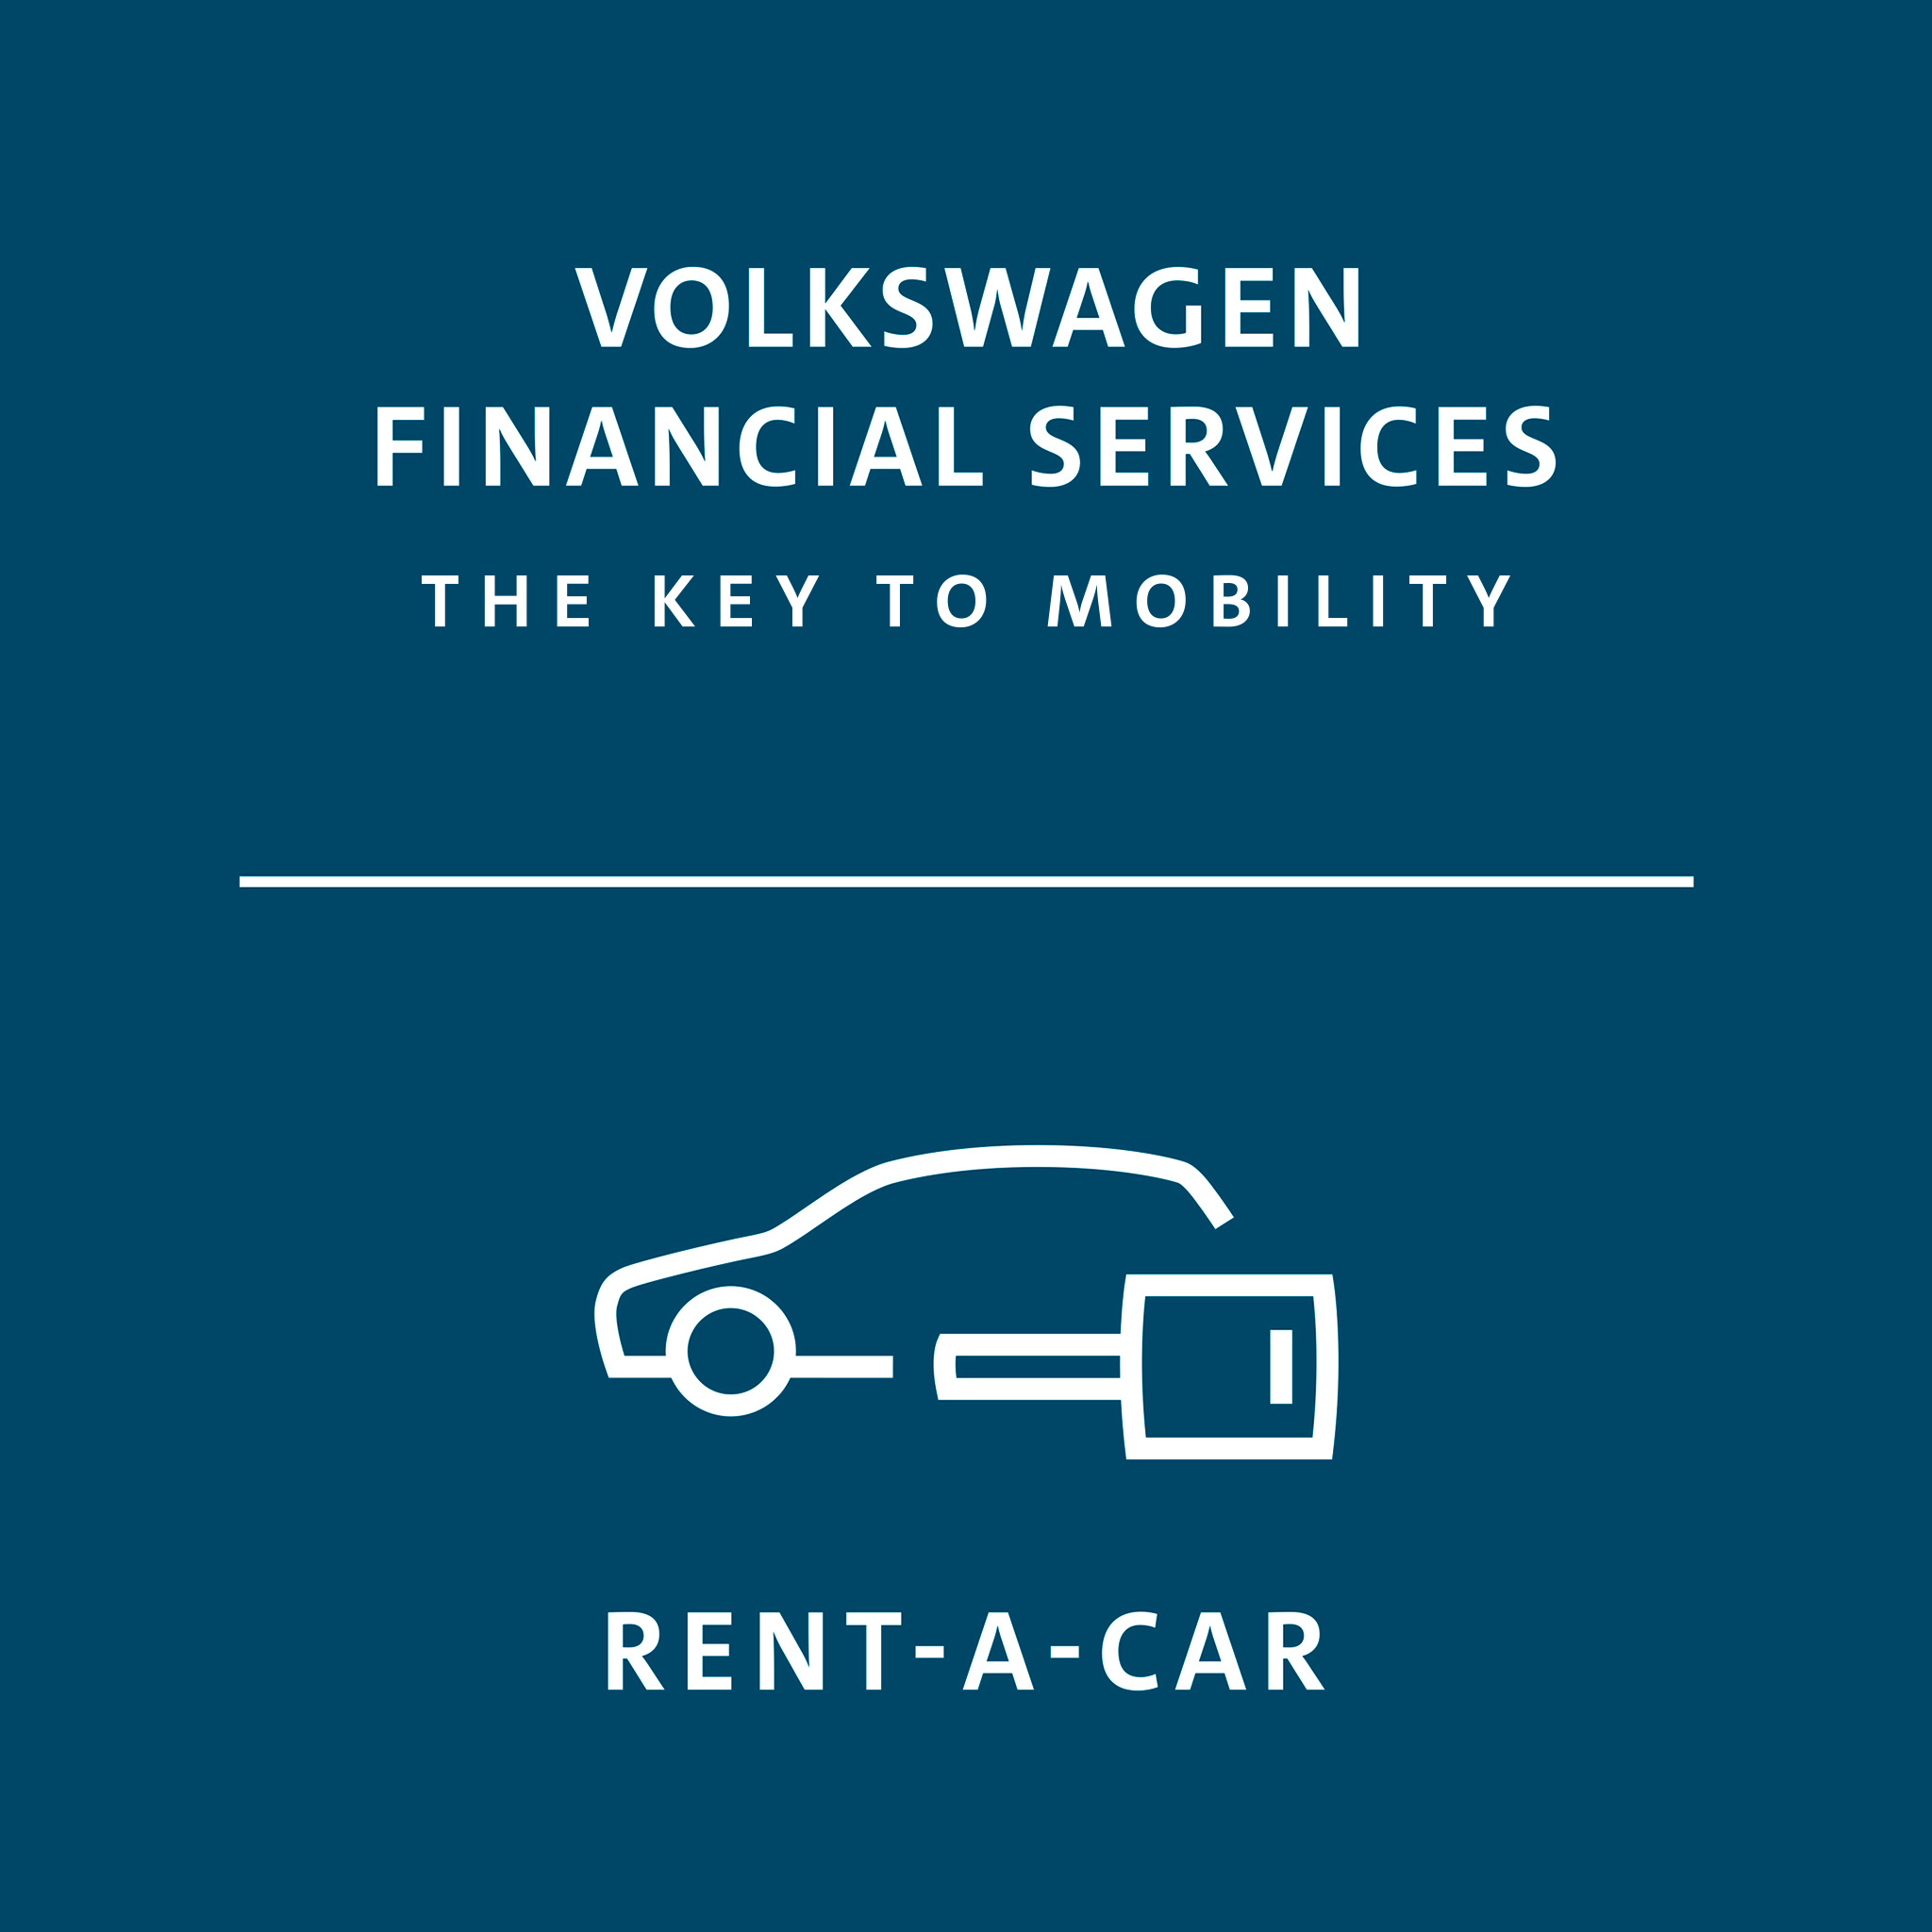 VW FS Rent-a-Car - Hannover List